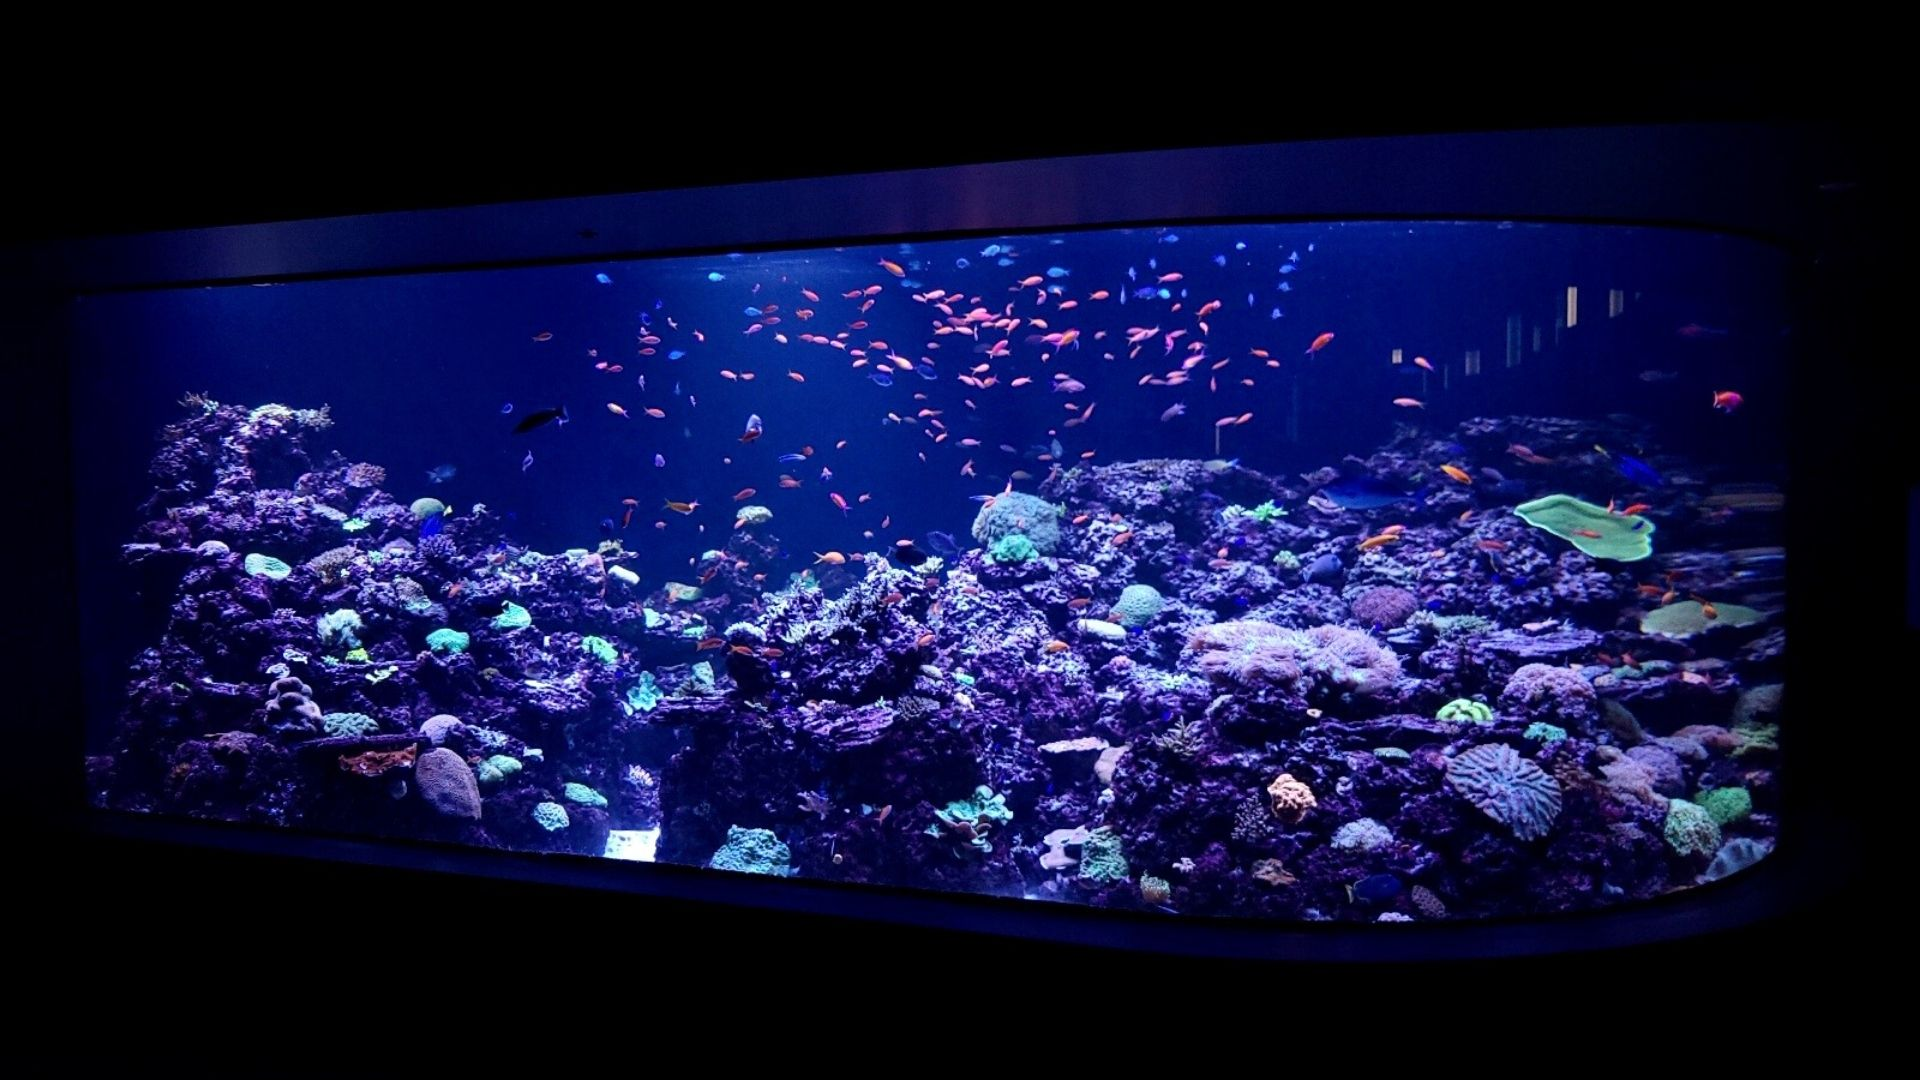 aquarium with fish and coral